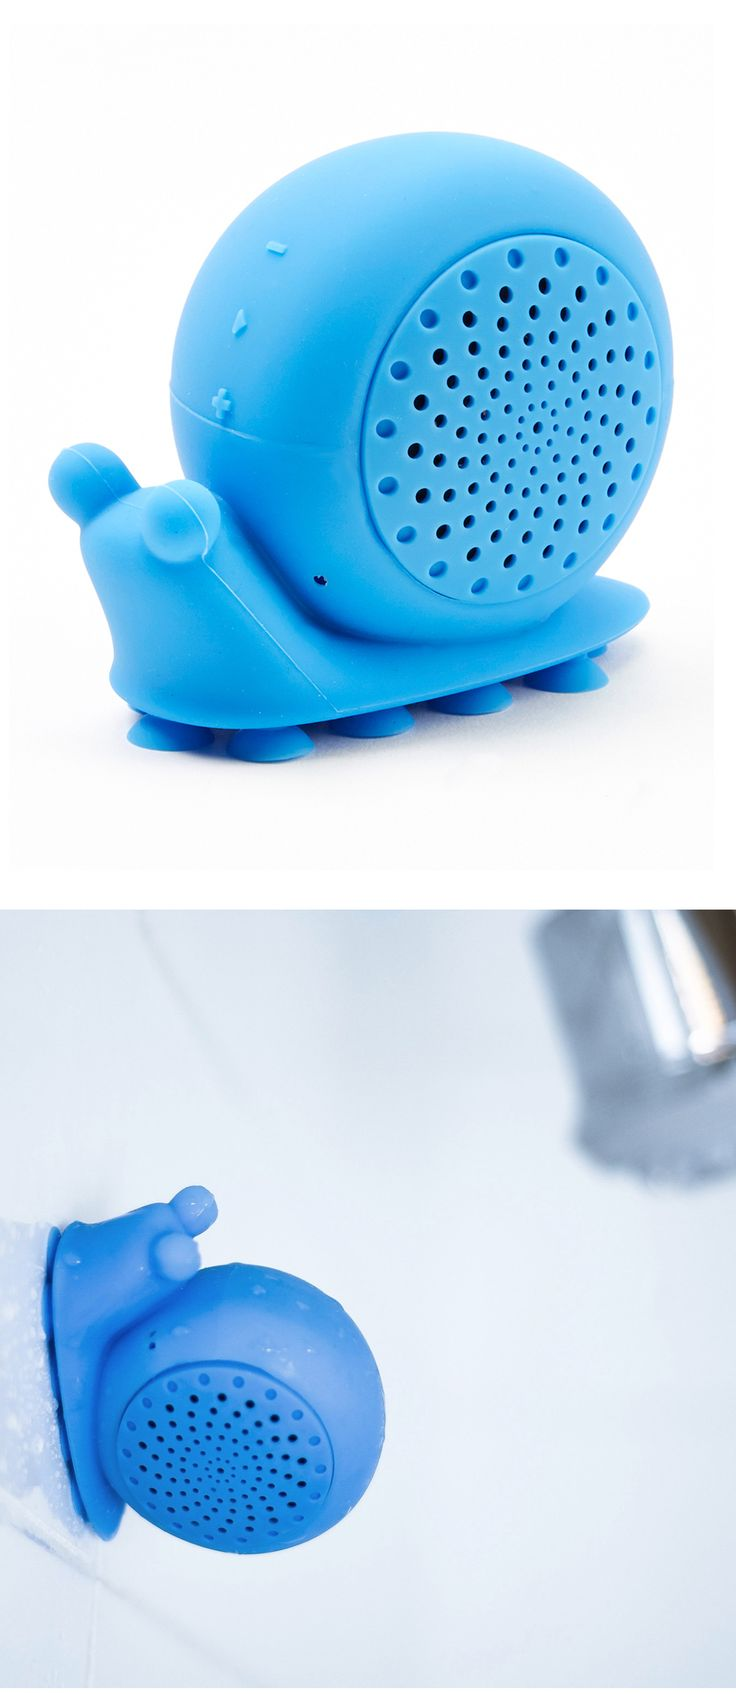 Bluetooth Shower Speaker Creatures (snails, octopus, & turtles)   This is awesome! I want a shower snail! hehe :P Krissy